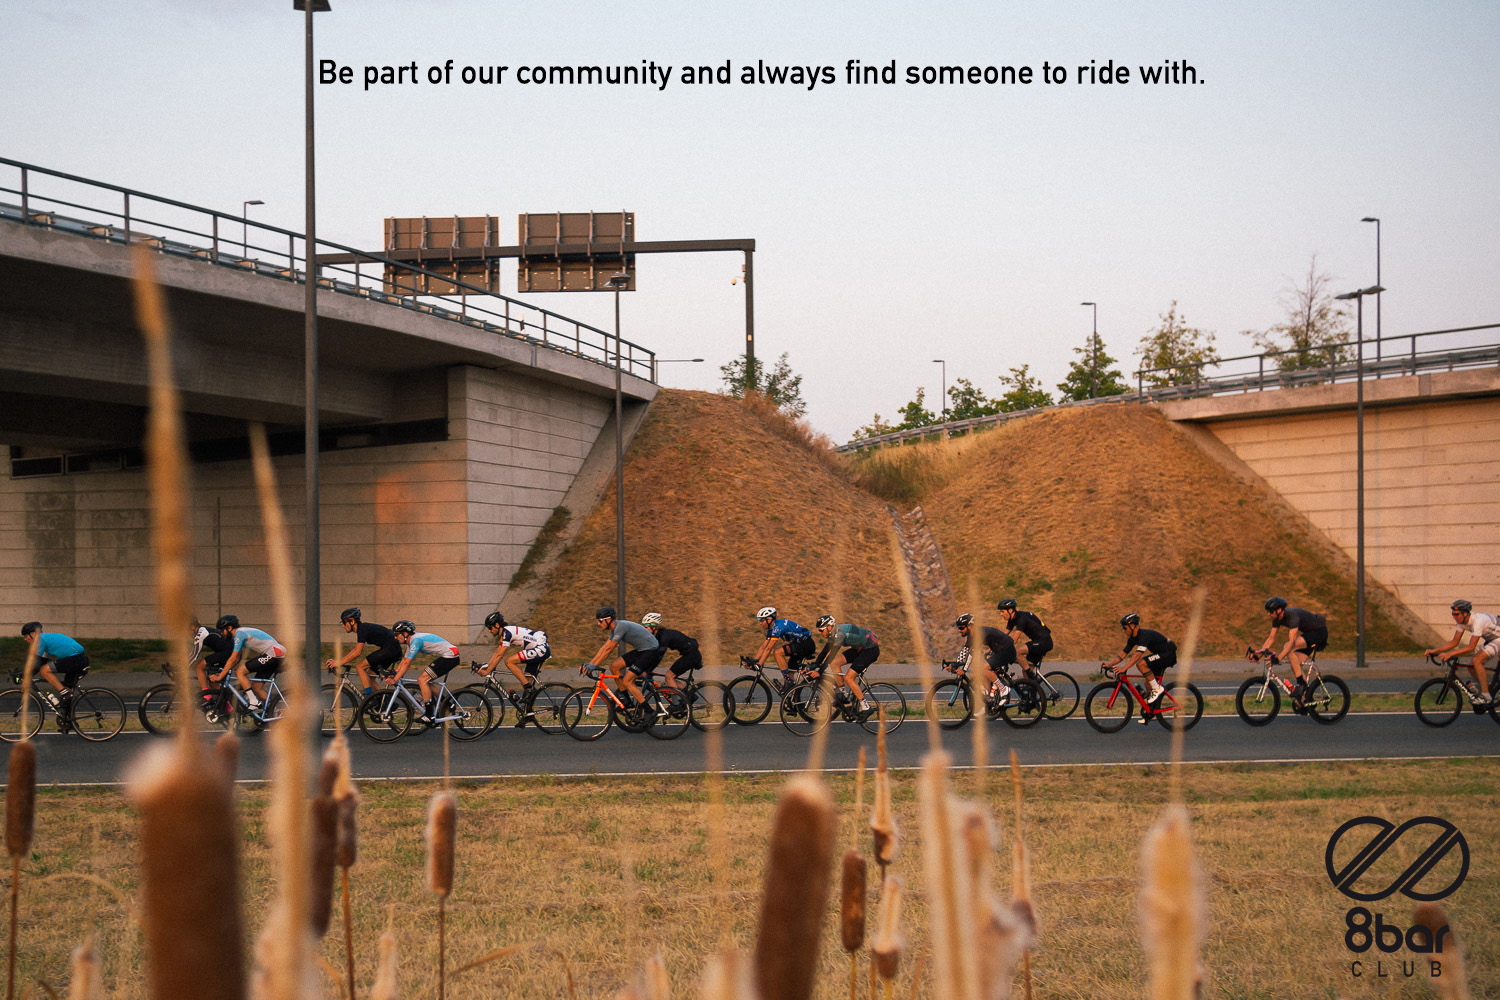 Be part of our community and always find someone to ride with 002